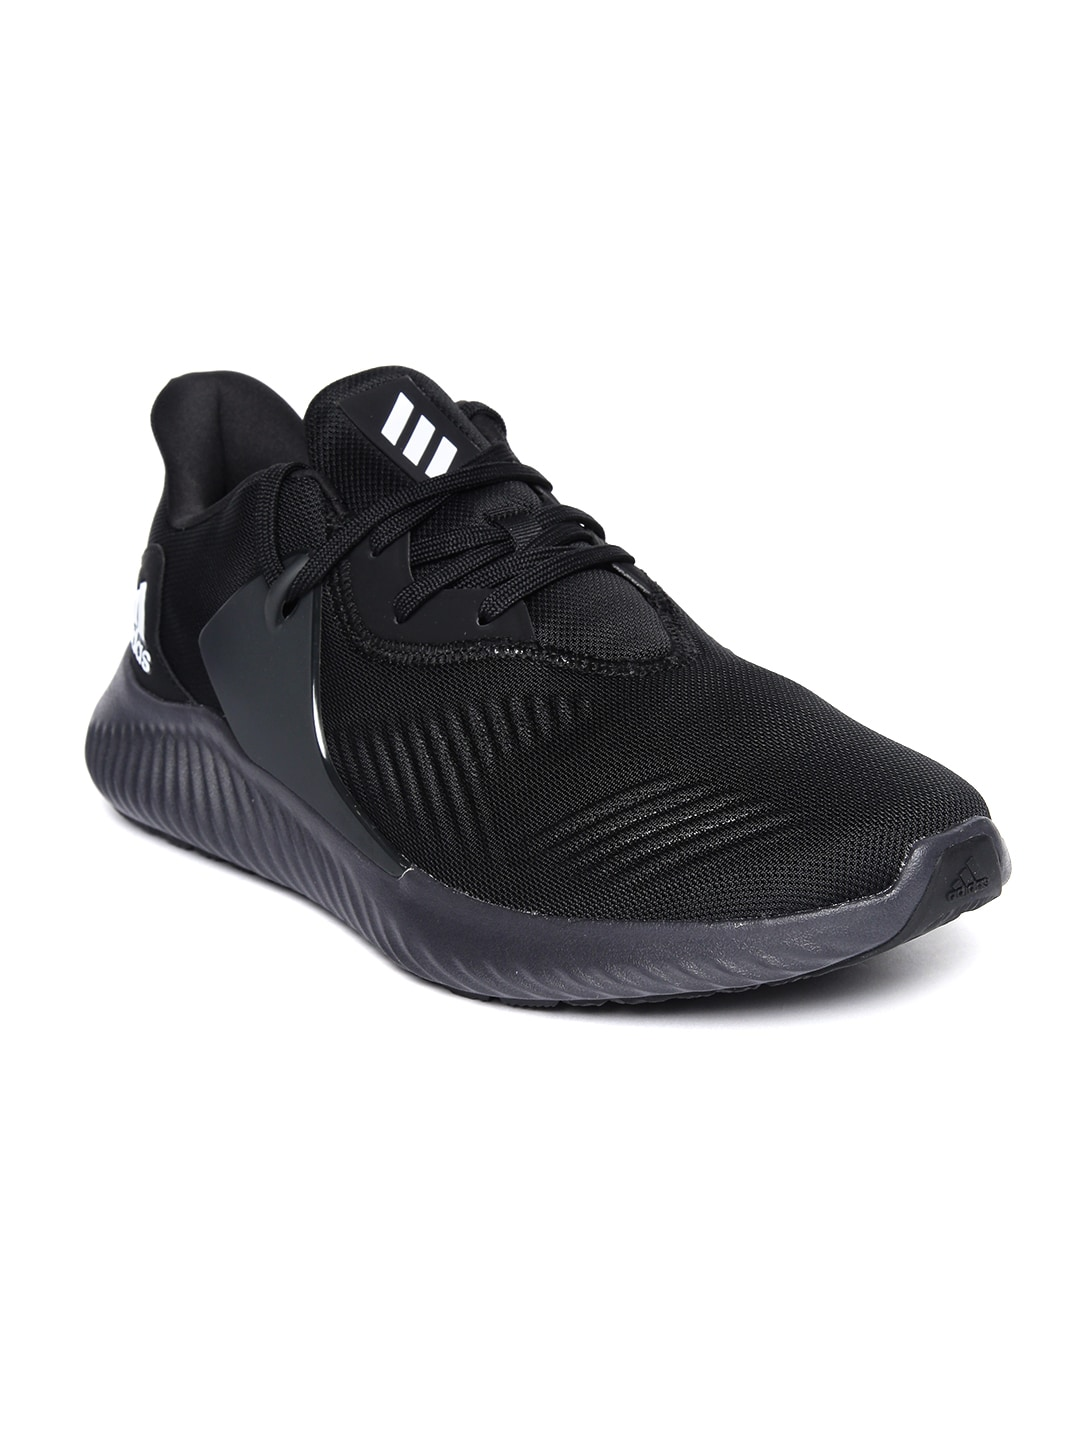 d143439d6 Adidas Sports Shoes - Buy Addidas Sports Shoes Online